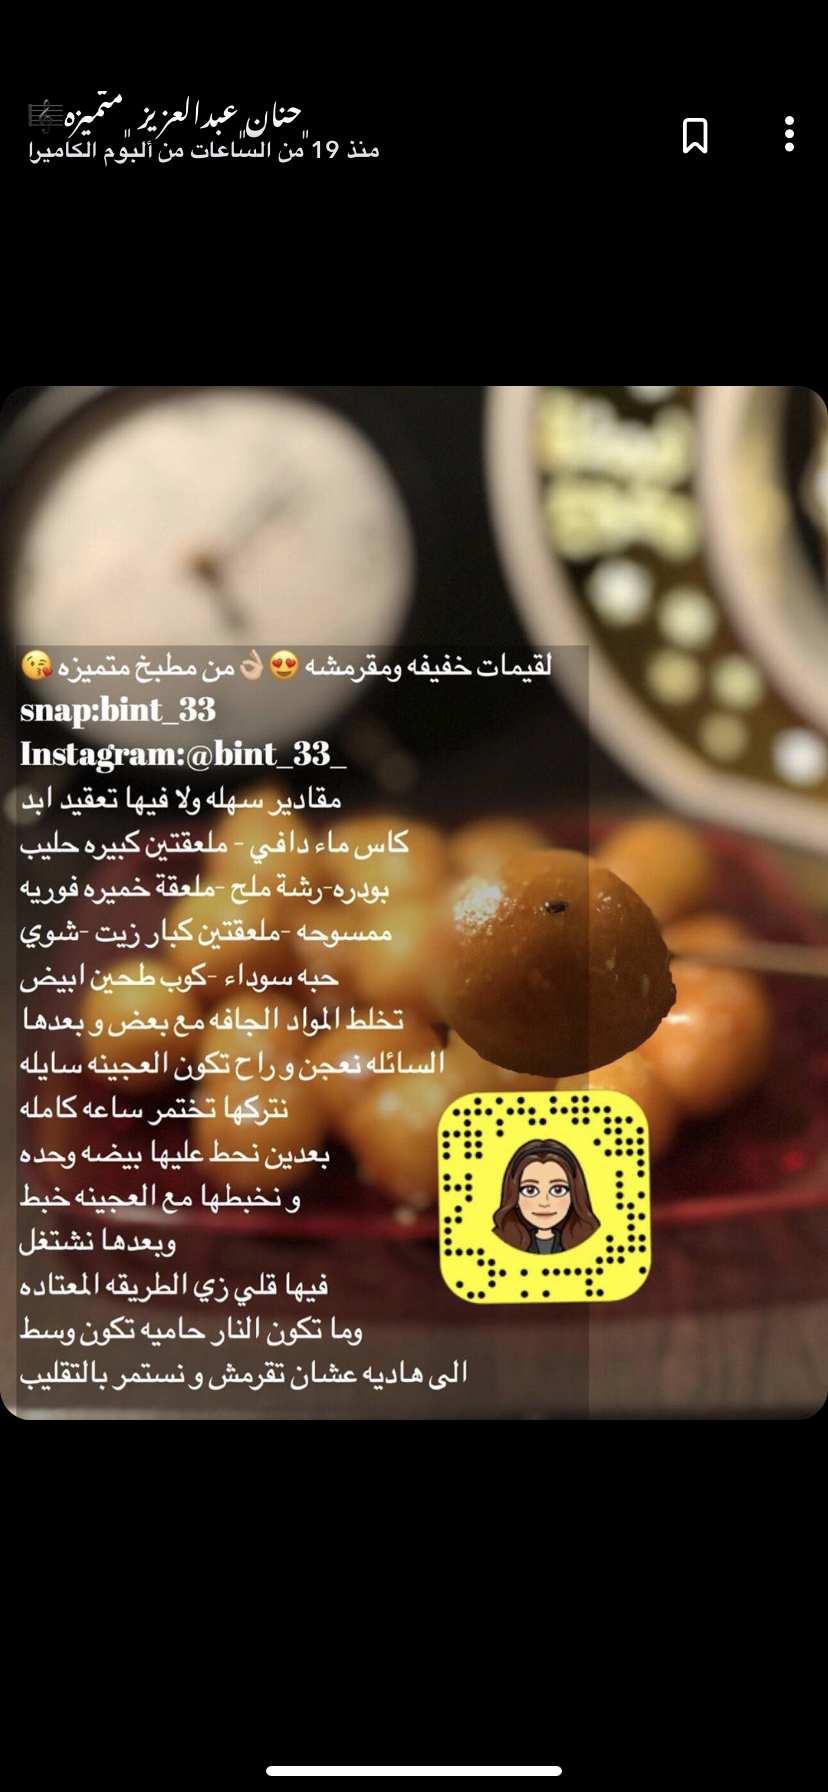 Pin By Hana On معجنات سندوتشات Sweets Recipes Cooking Recipes Food